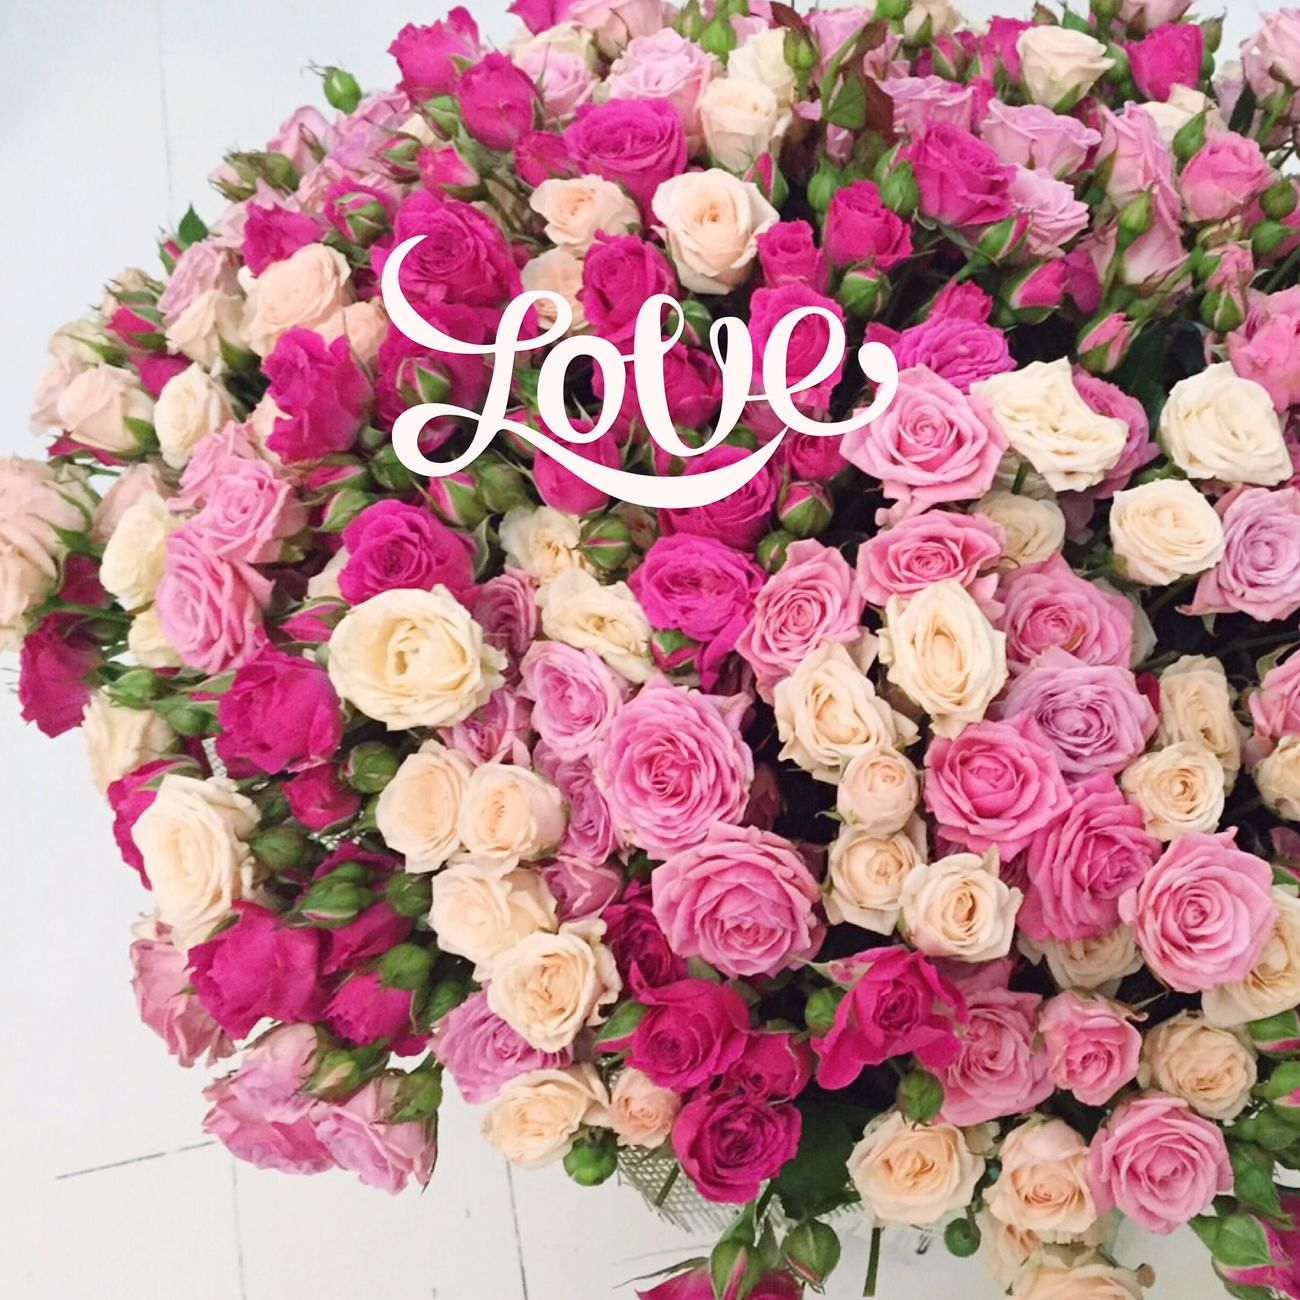 Flowers Favoriteflower Flowerslovers Love Follow us💖🎀😊